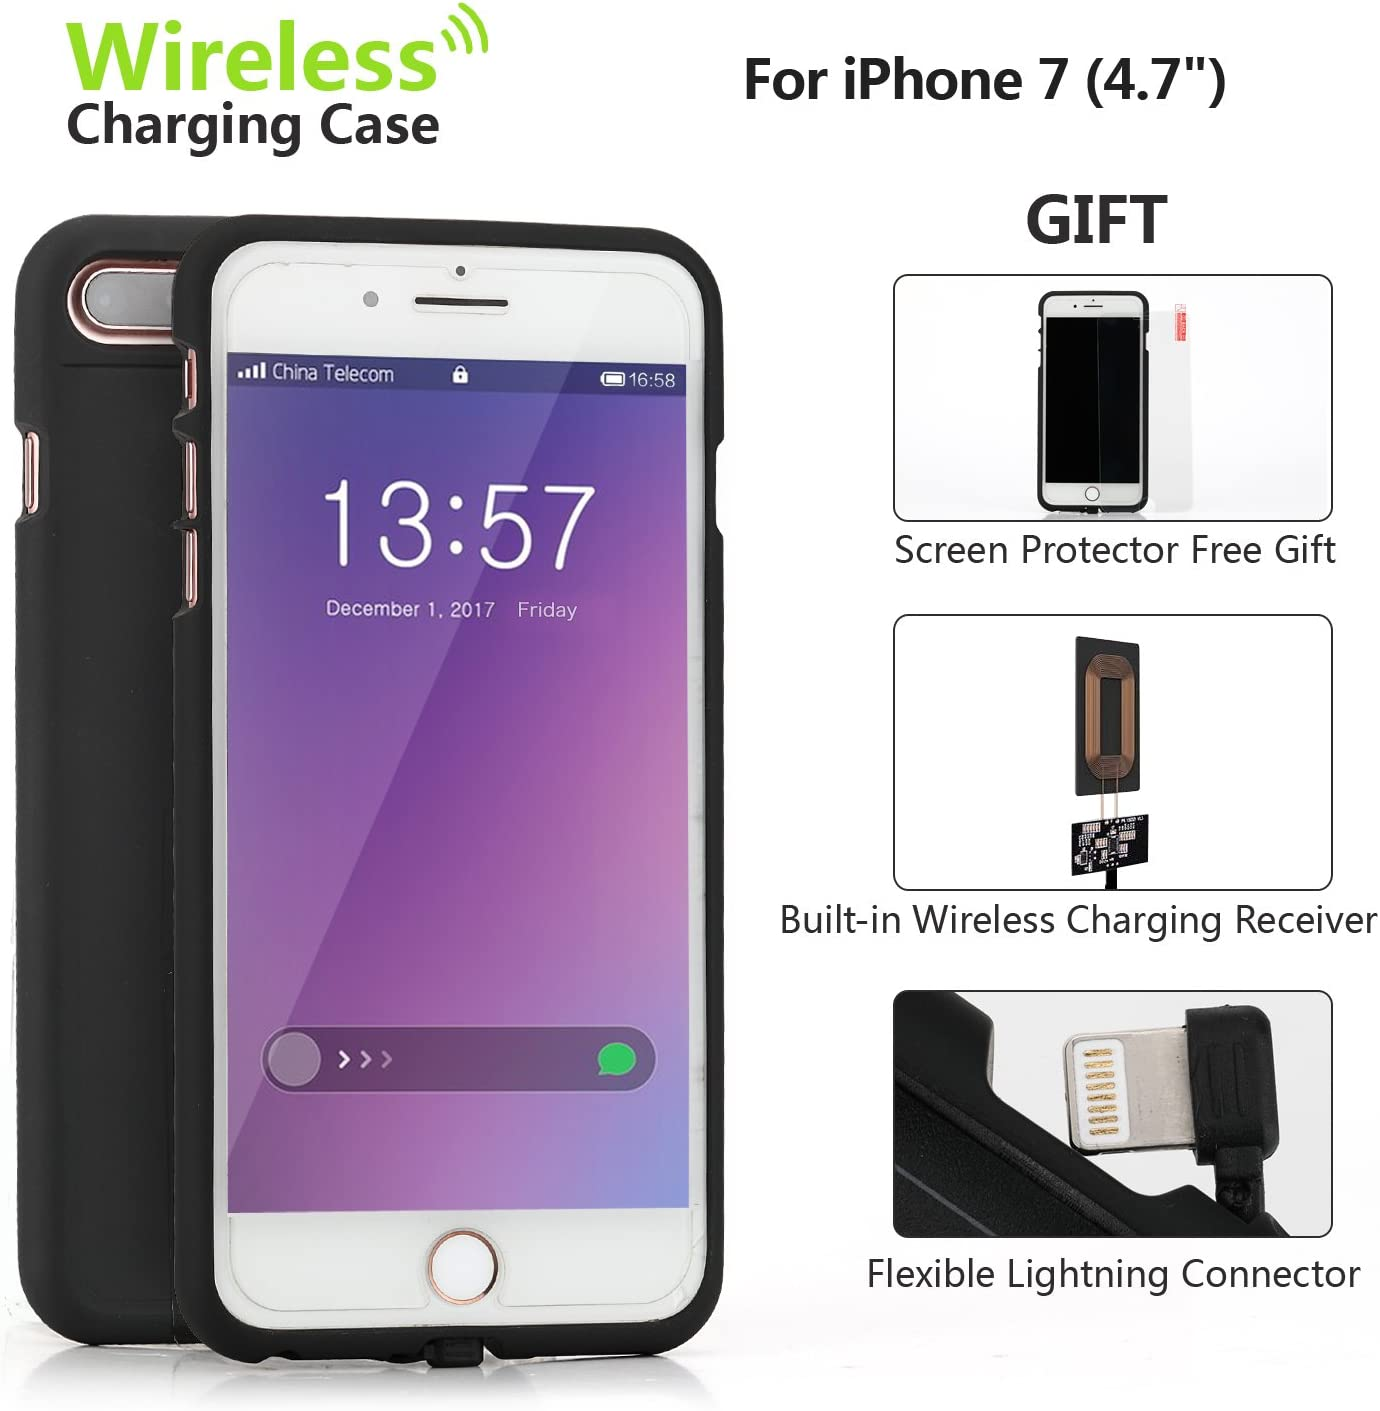 ONine Wireless Charging Receiver Case for iPhone 7, QI Wireless Charger Case Back Cover with Flexible Lightning Connector, QI Charging case with